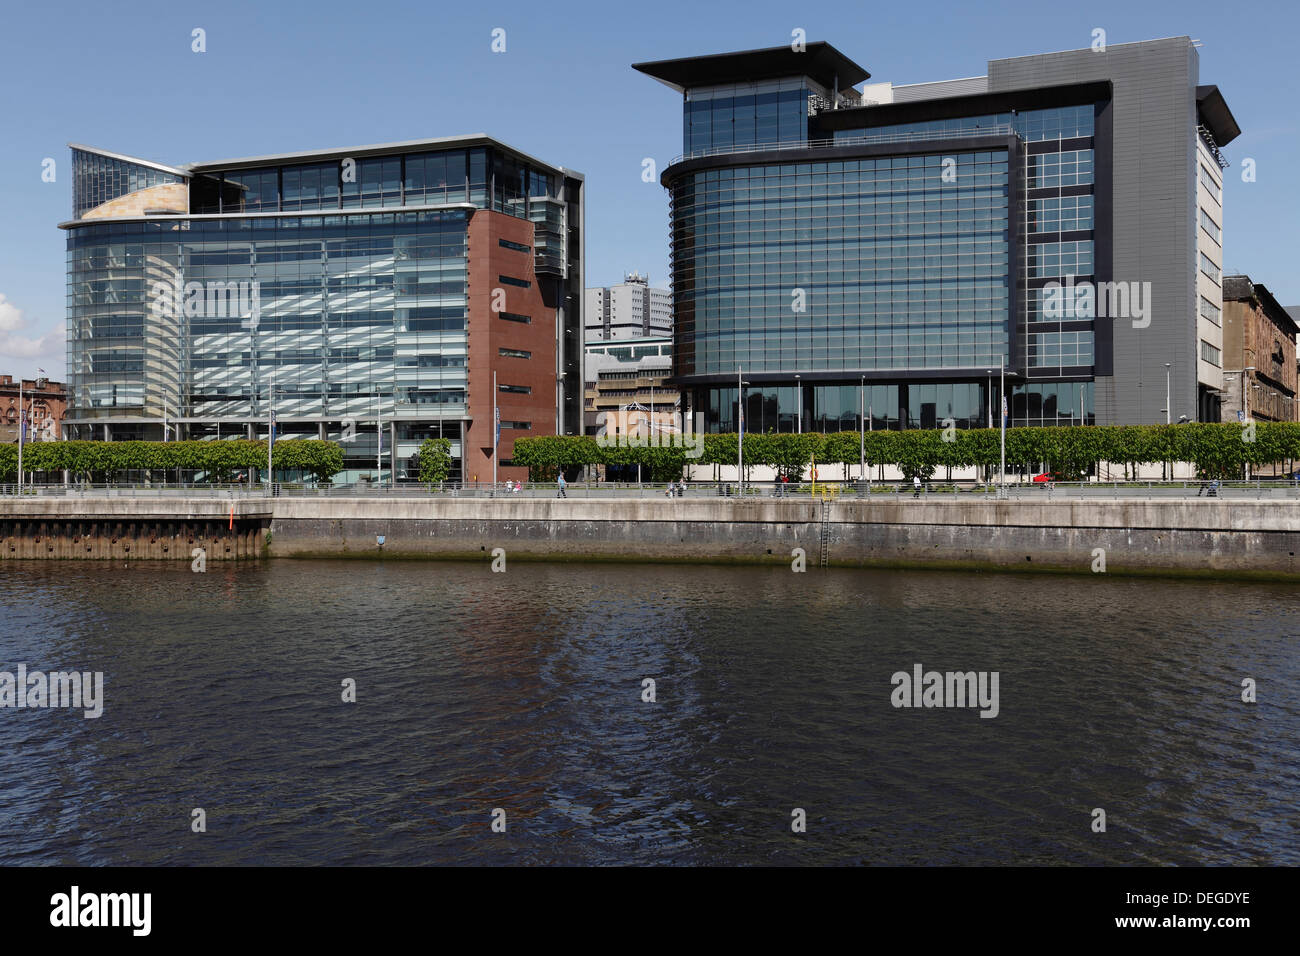 Commercial offices in the International Financial Services District, 200 and 150 Broomielaw, River Clyde, Glasgow, Scotland - Stock Image